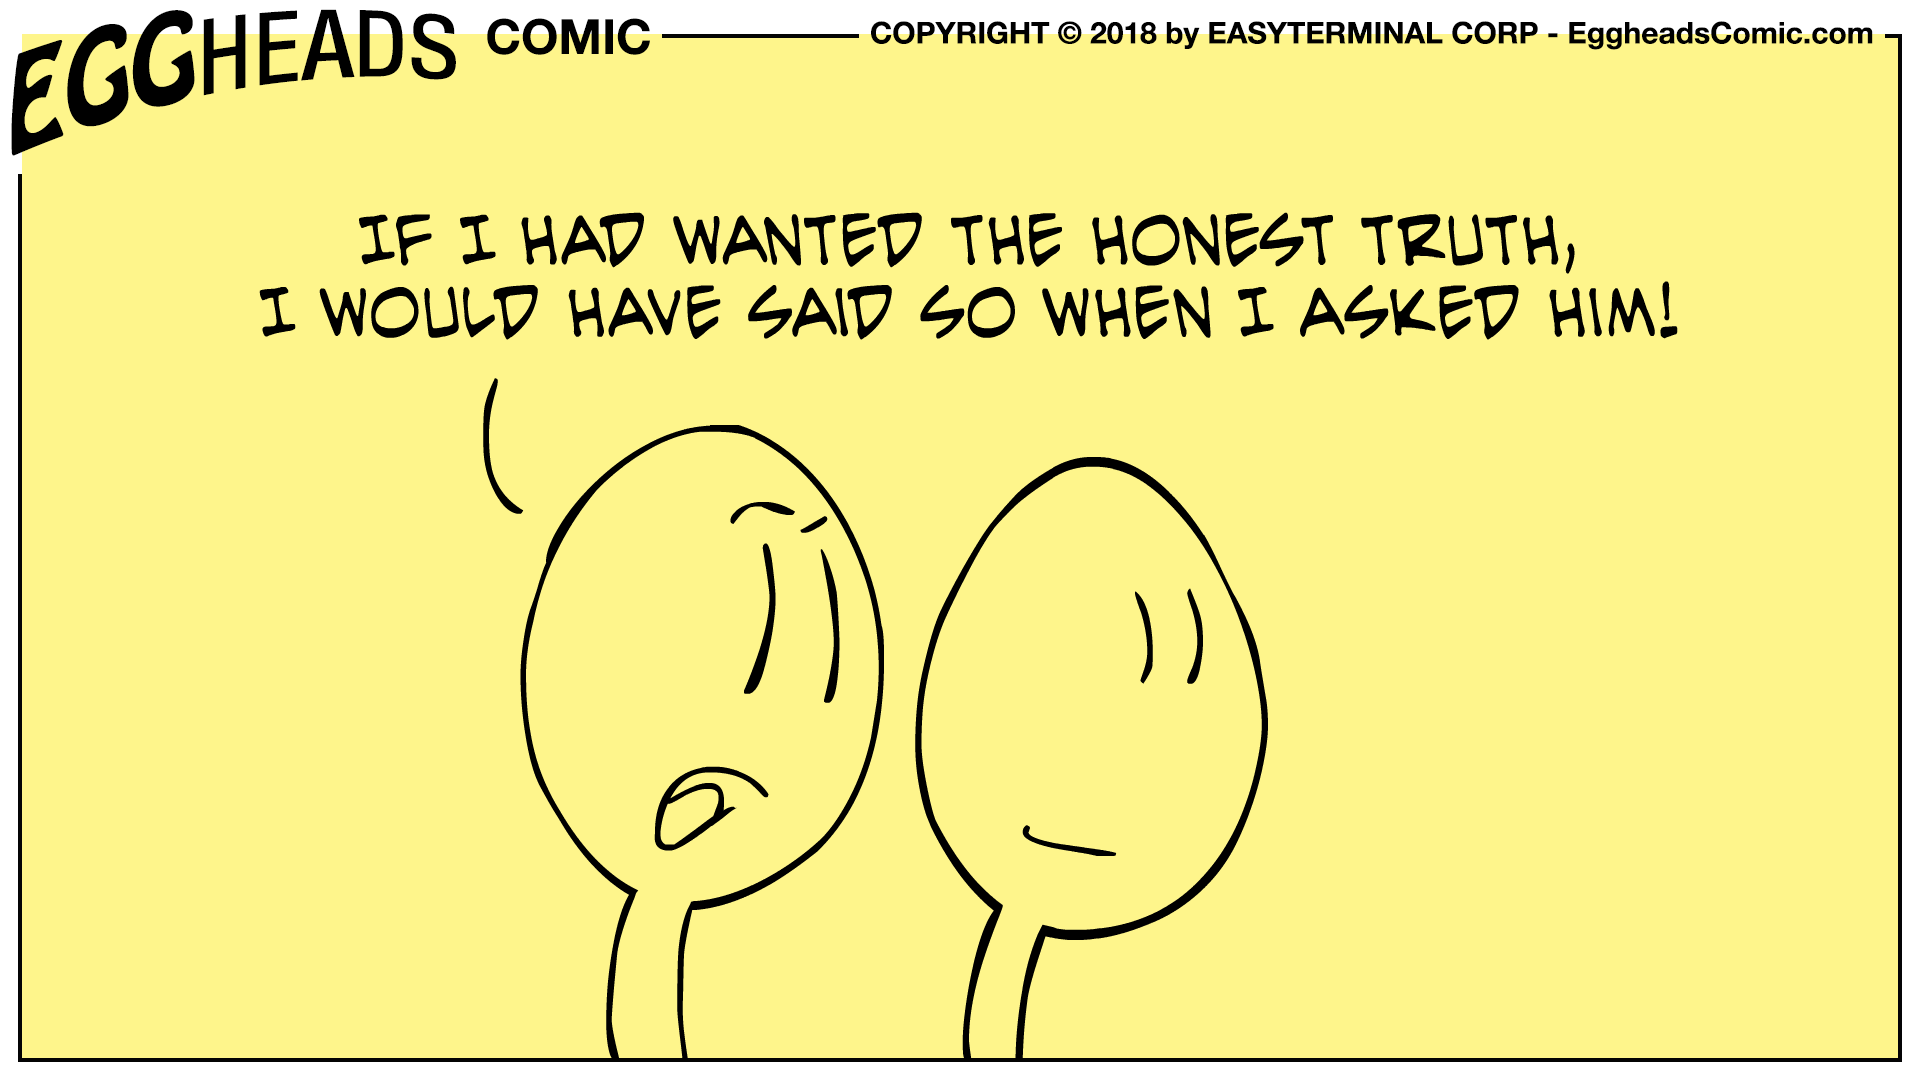 Webcomic Eggheads Comic Strip 098 The Honest Truth